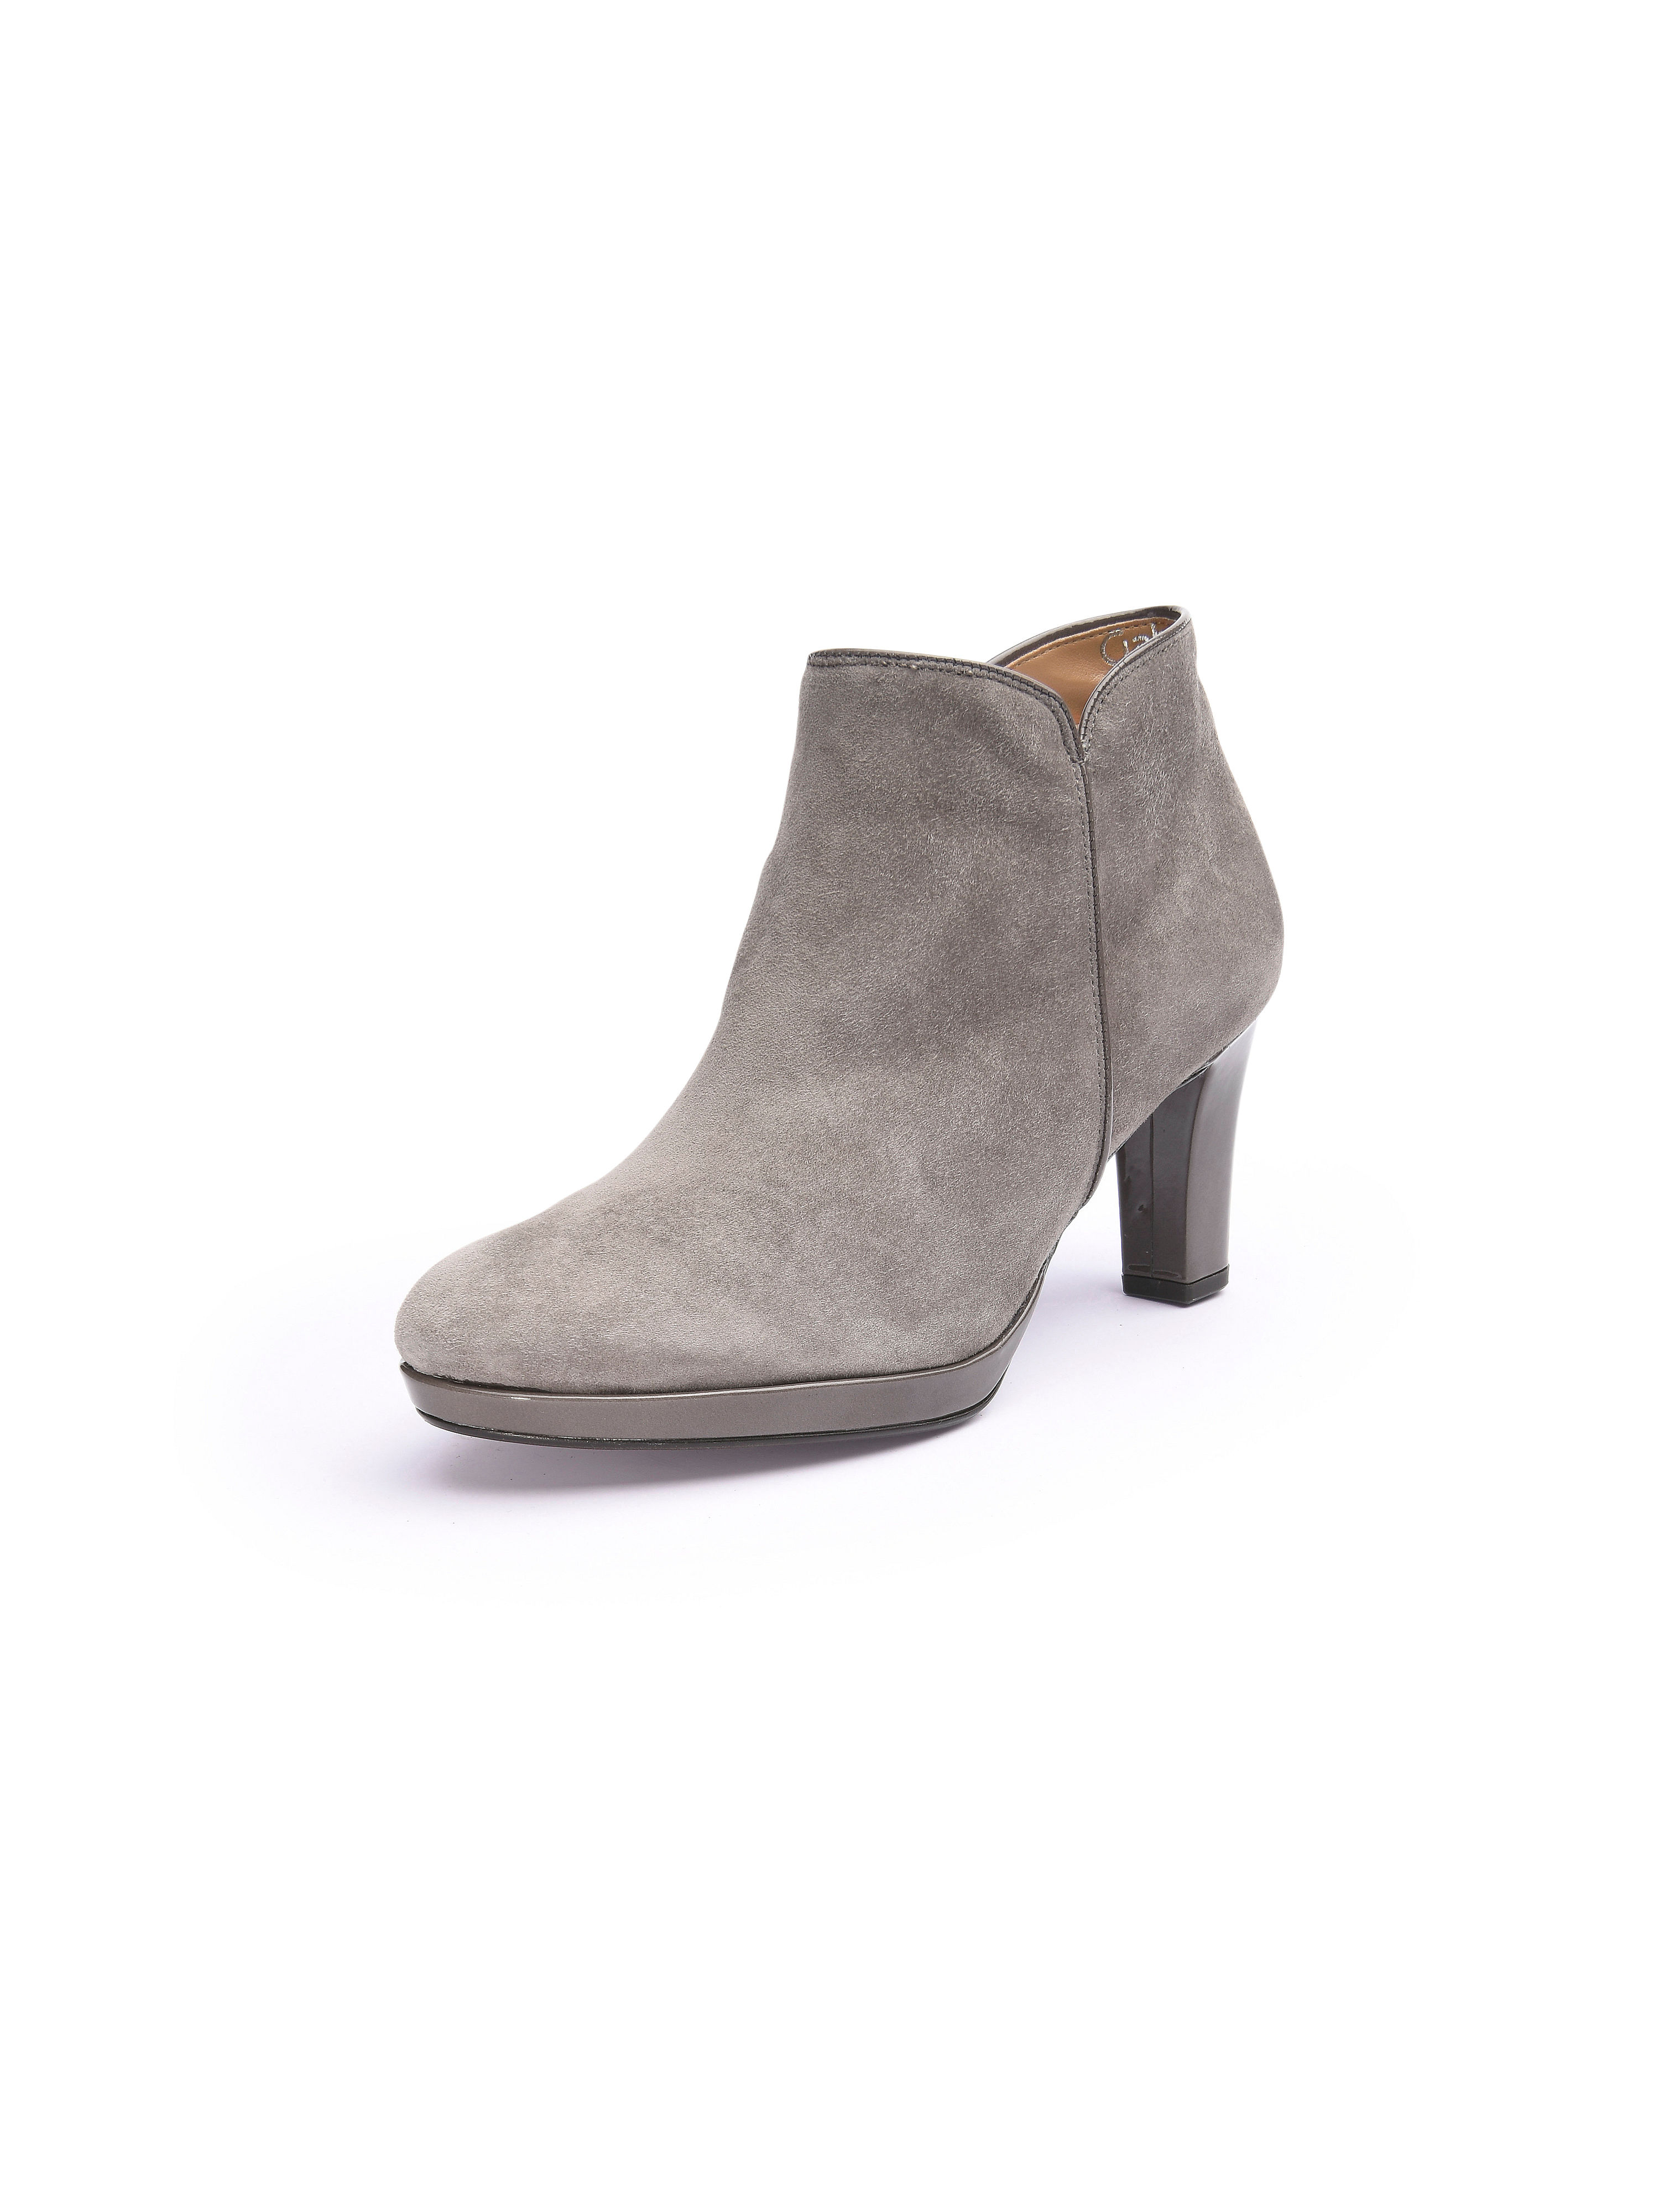 Ankle boots from Gabor beige